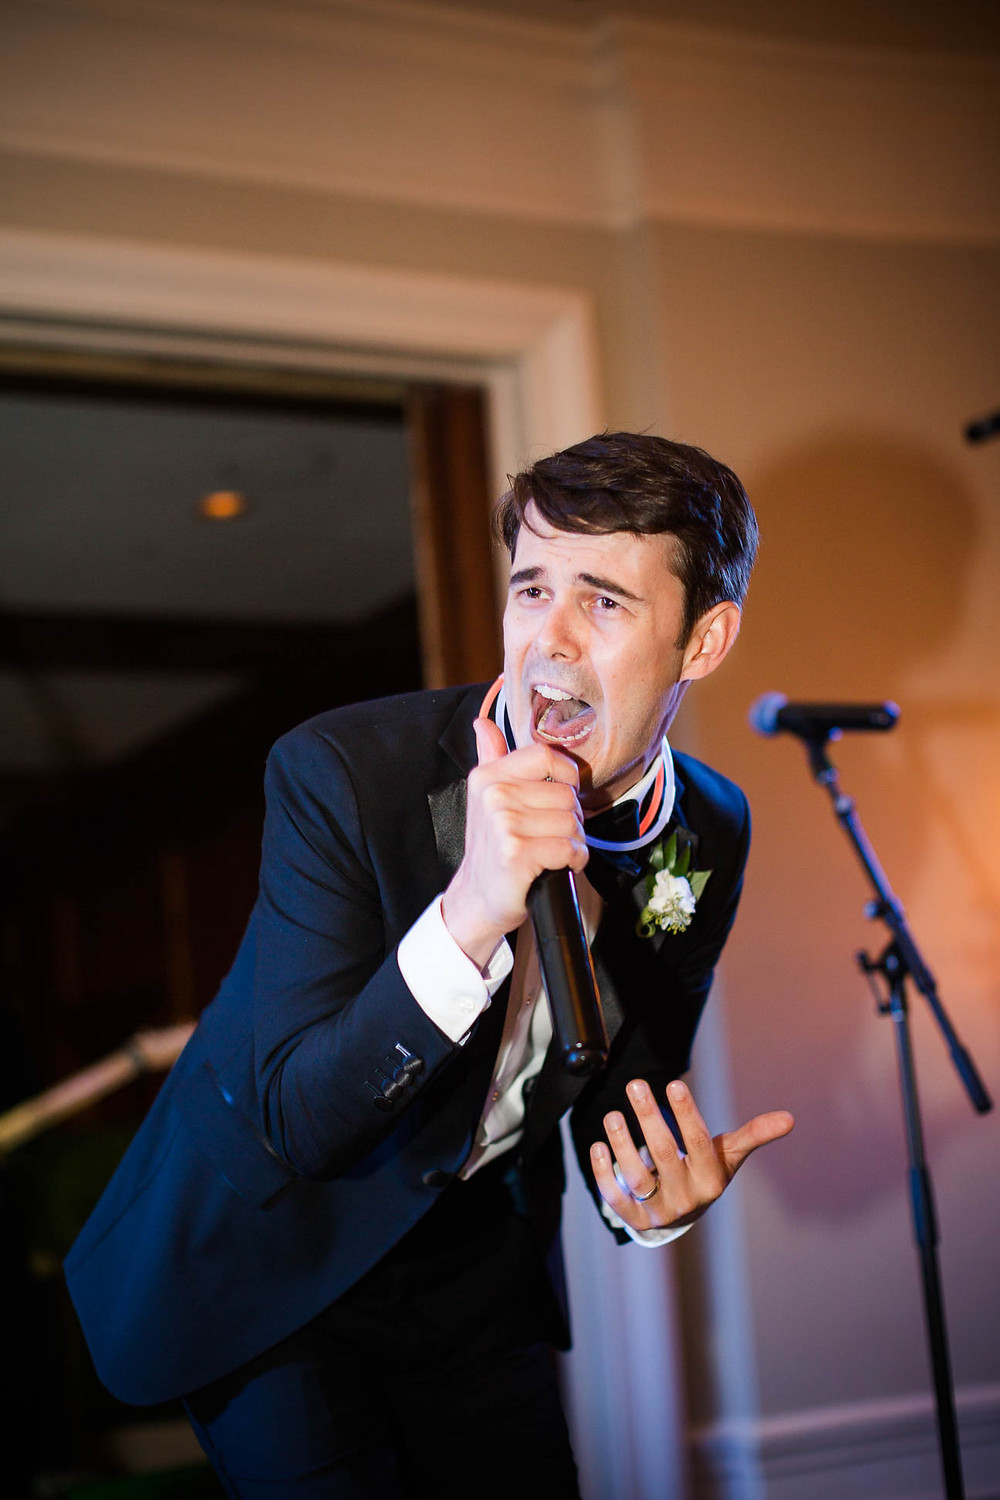 groom performs his favorite song on stage at his wedding reception